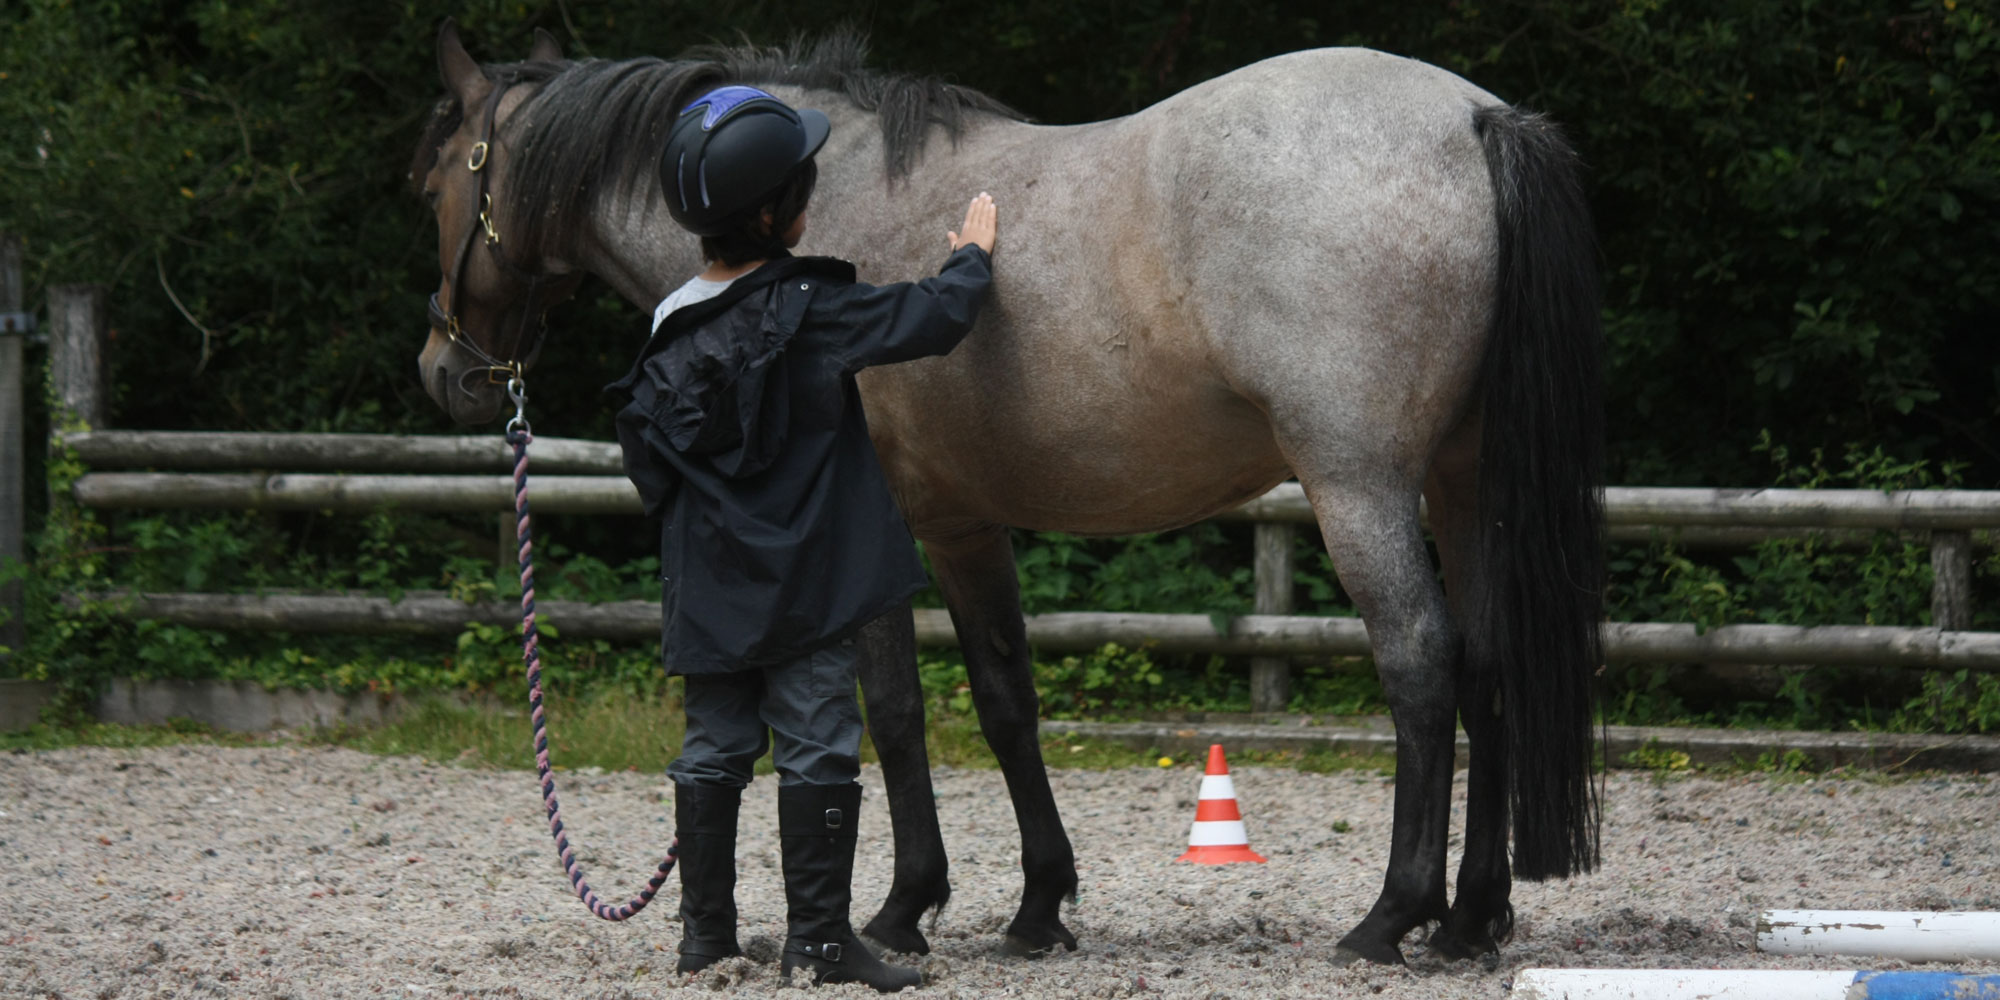 Enter the non-judgemental world of the horse